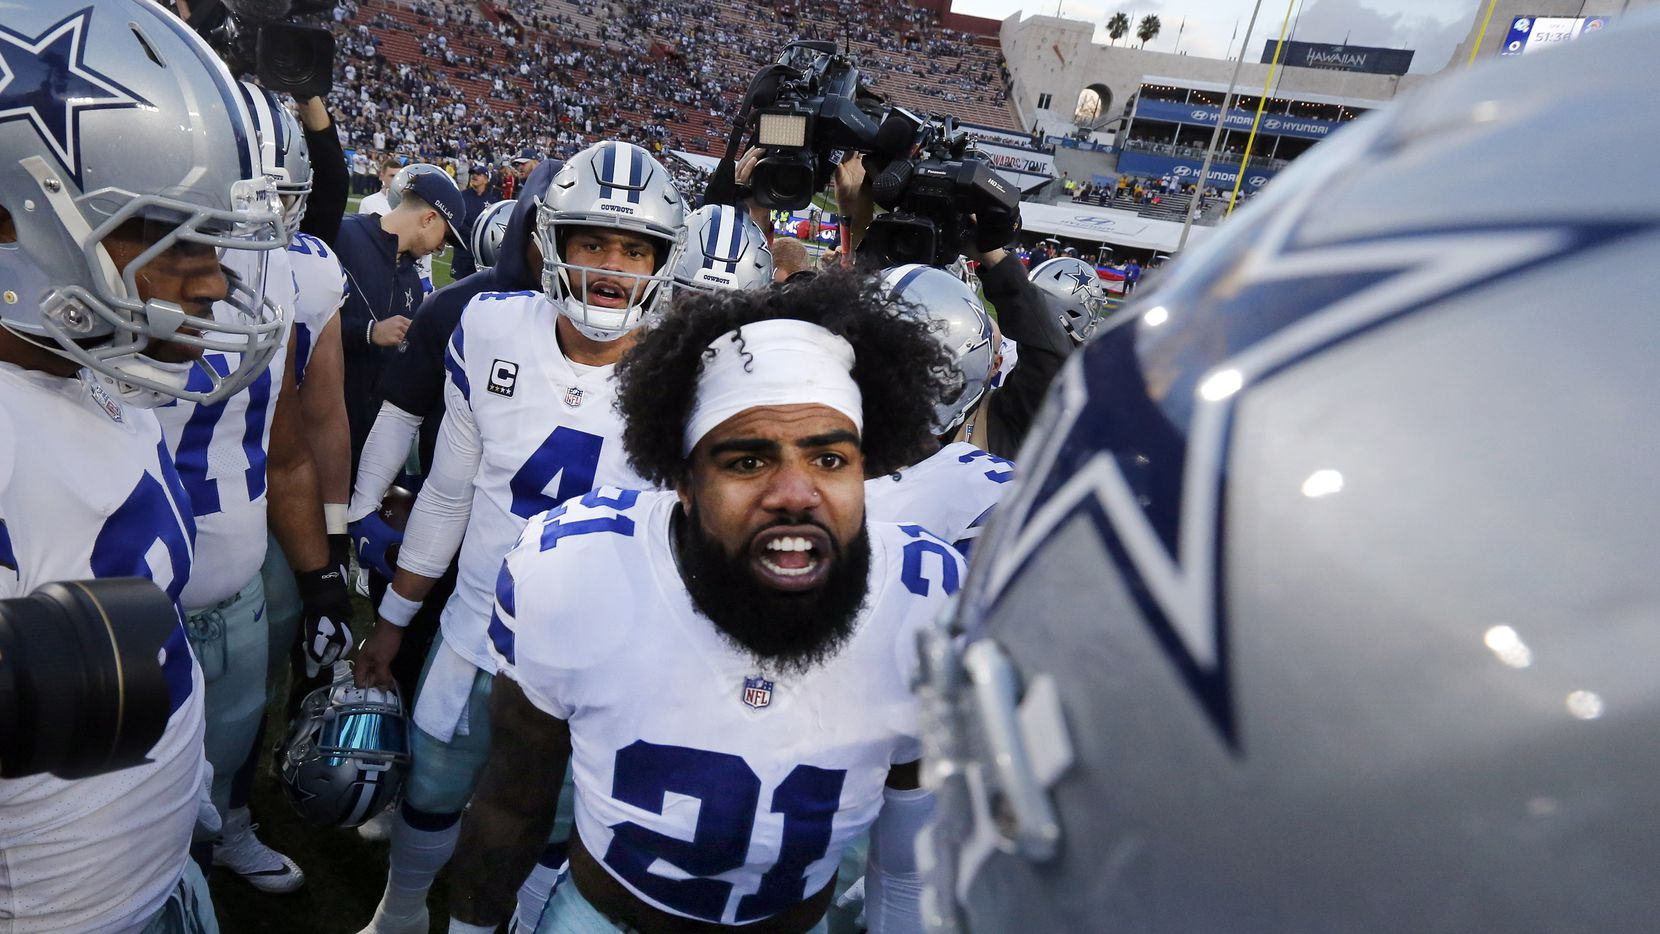 Dallas Cowboys players get fired up by running back Ezekiel Elliott (21) before their NFC Divisional Playoff game against the Los Angeles Rams at Los Angeles Memorial Coliseum in Los Angeles, Saturday, January 12, 2019. (Tom Fox/The Dallas Morning News)